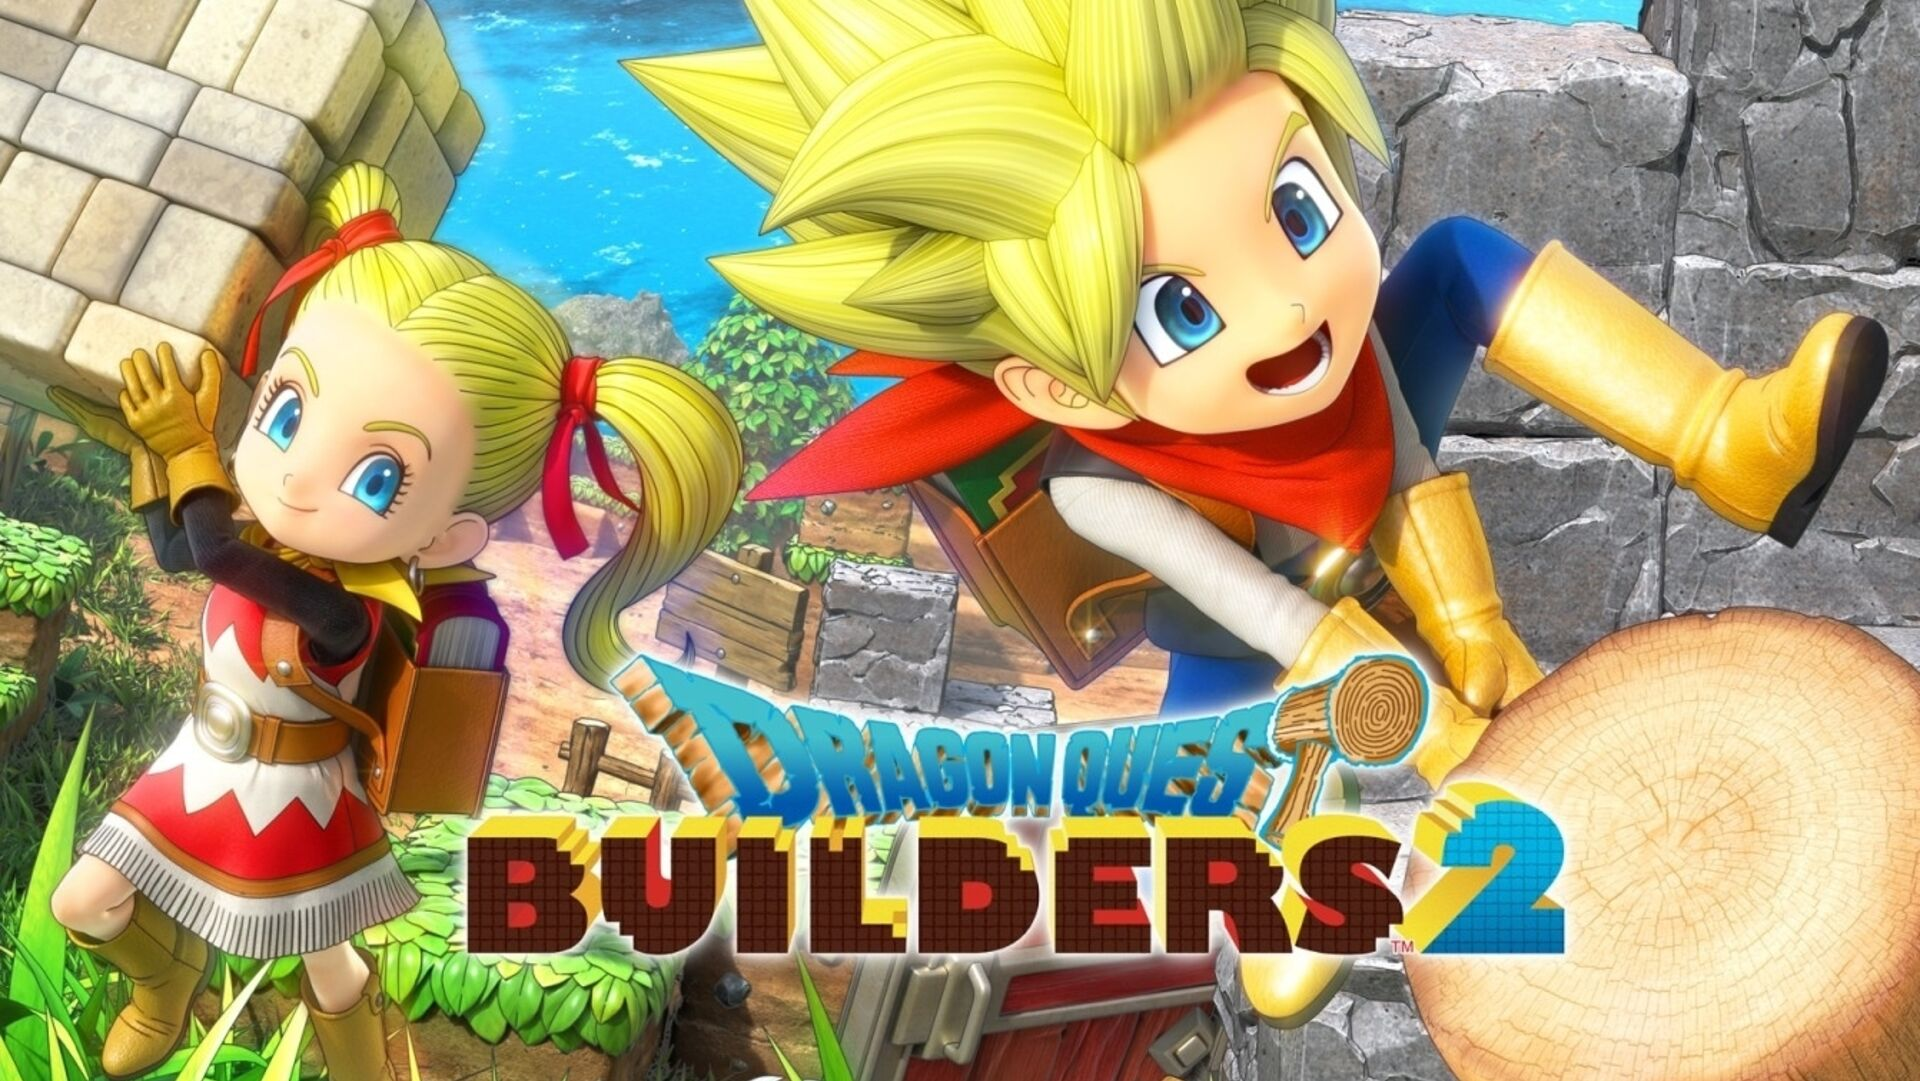 Dragon Quest Builders 2 review - a little Breath of the Wild